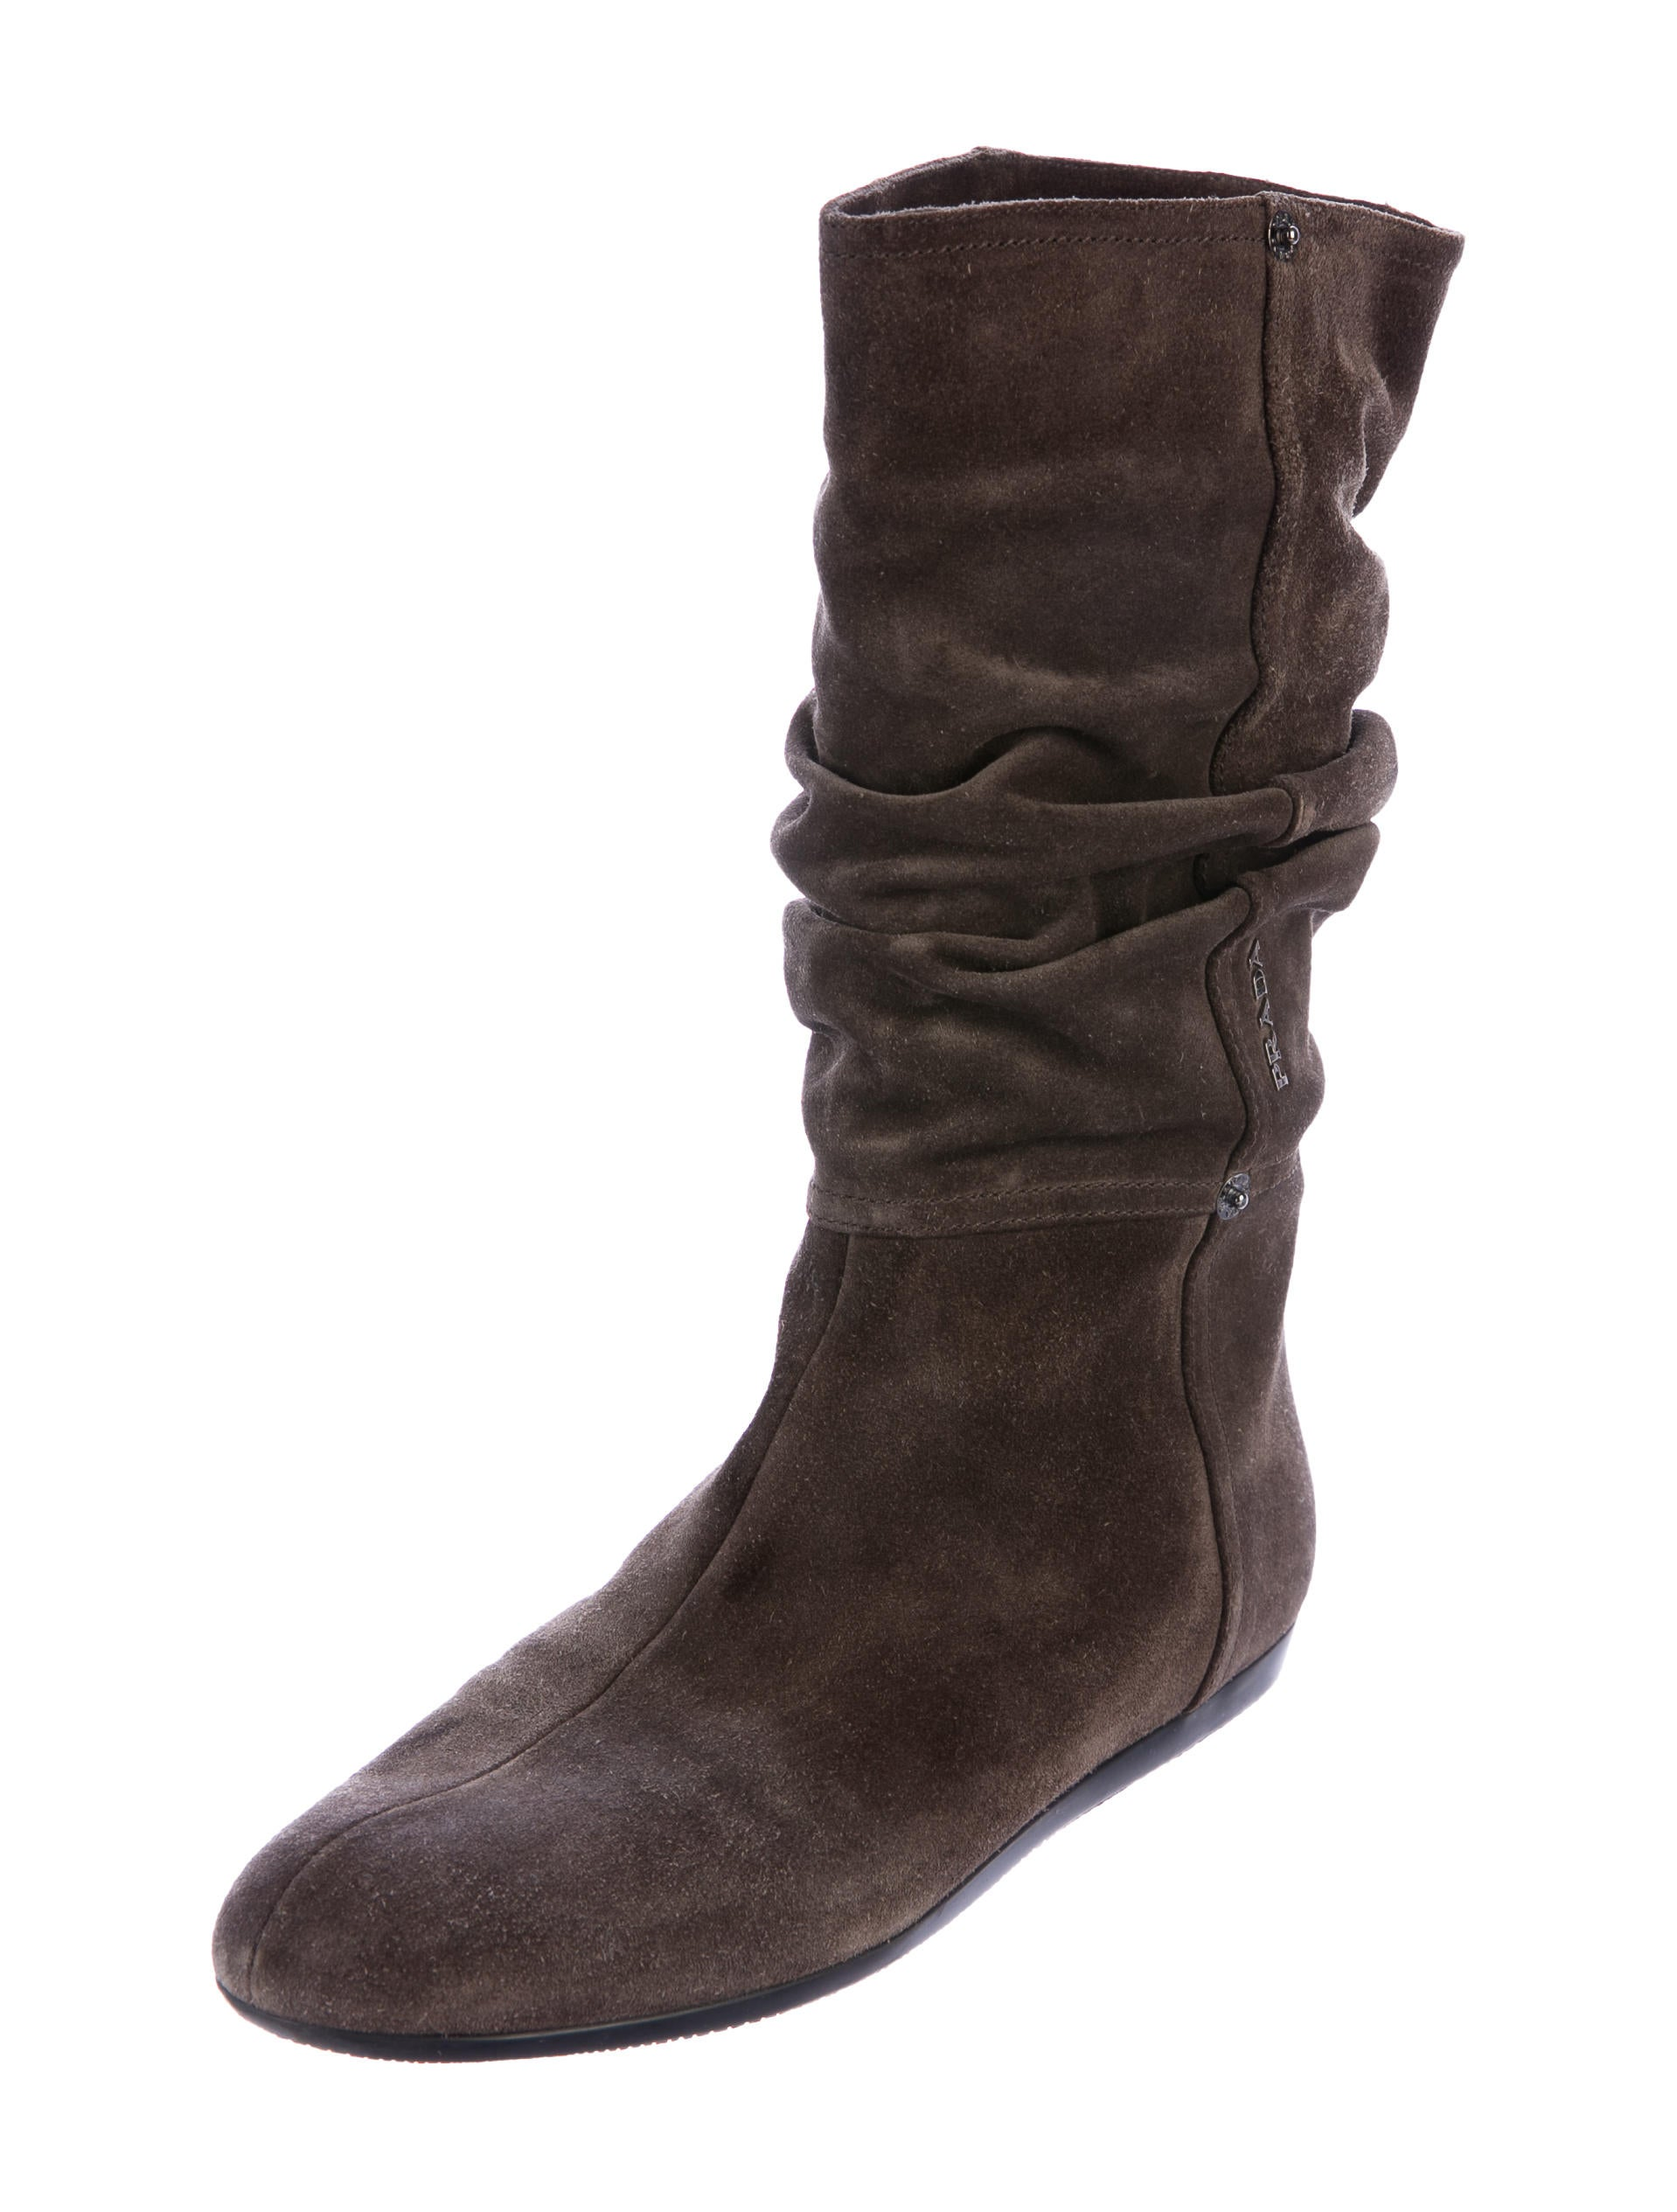 prada sport suede slouch mid calf boots shoes wpr43907